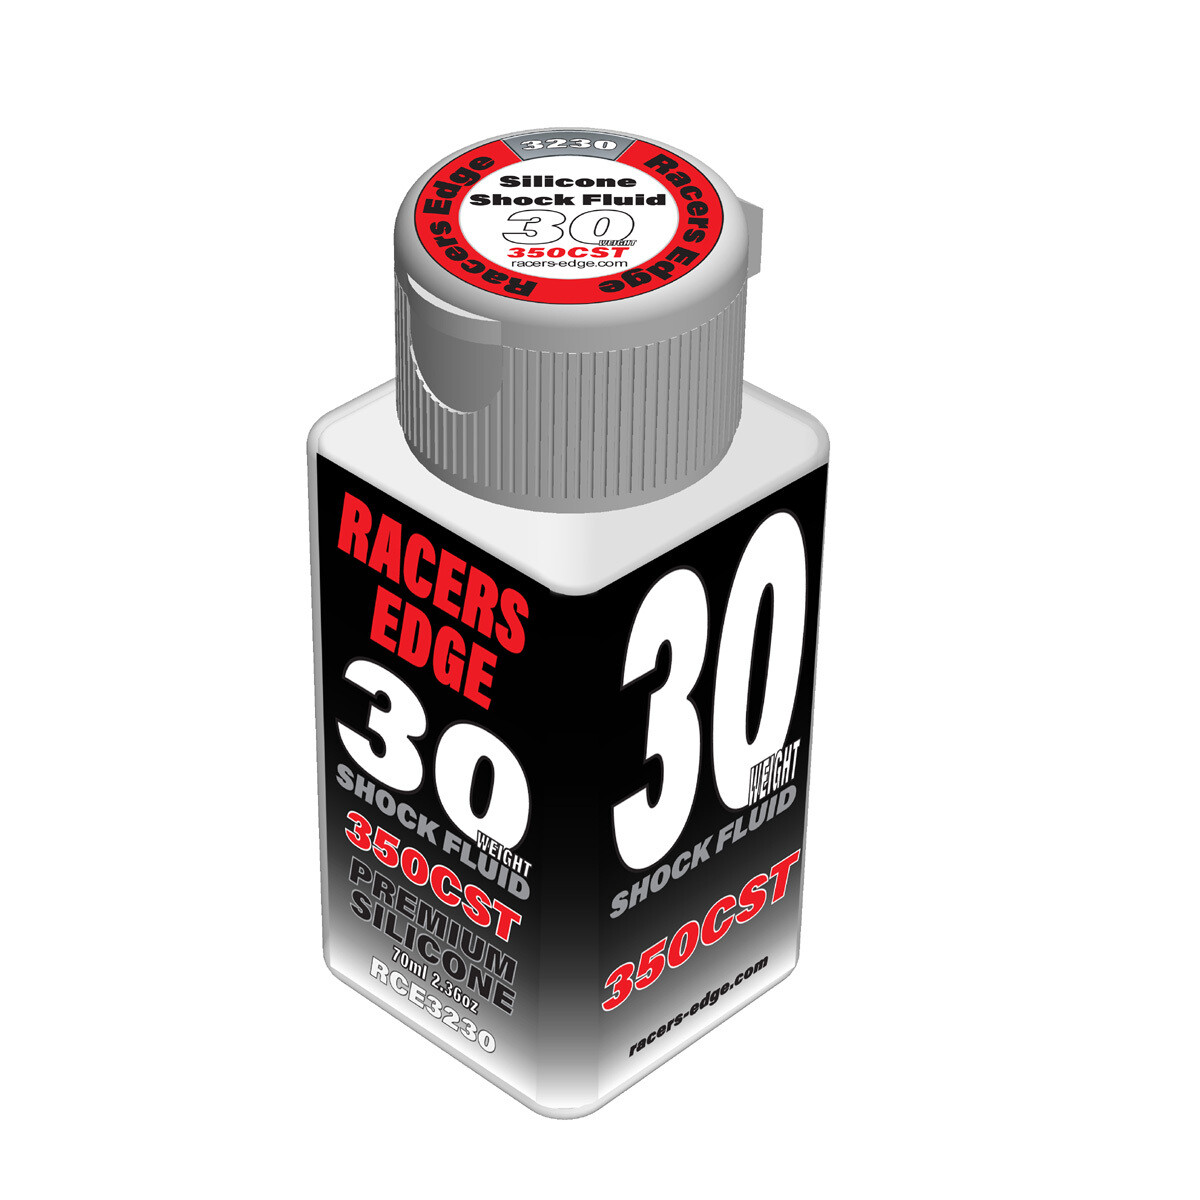 Racers Edge 30 Weight, 350cSt, 70ml 2.36oz Pure Silicone Shock Oil RCE3230